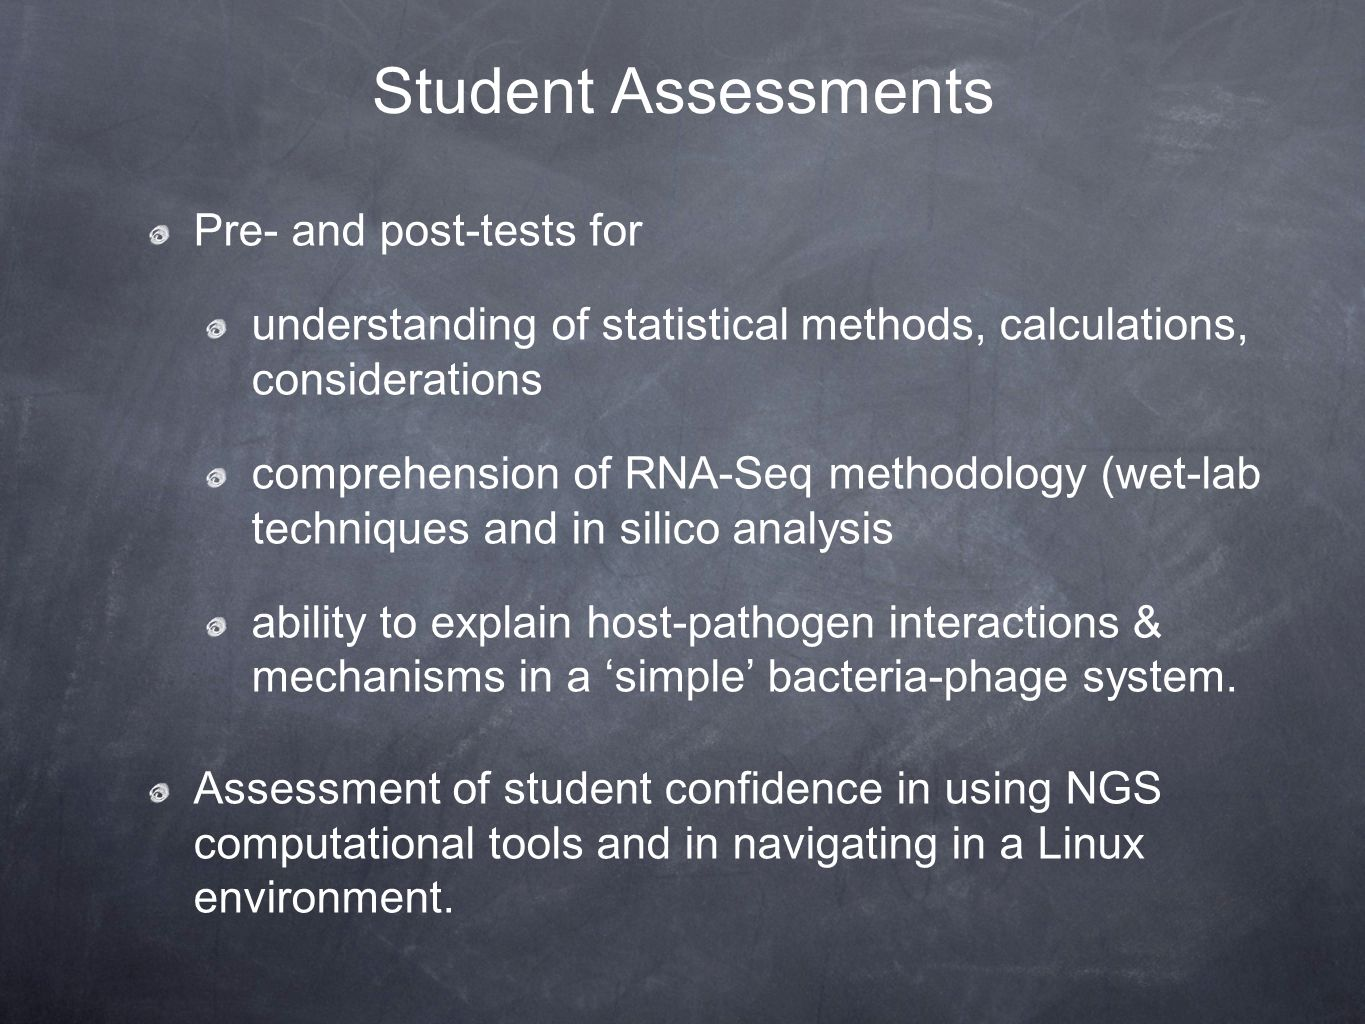 Student Assessments Pre- and post-tests for understanding of statistical methods, calculations, considerations comprehension of RNA-Seq methodology (wet-lab techniques and in silico analysis ability to explain host-pathogen interactions & mechanisms in a 'simple' bacteria-phage system.